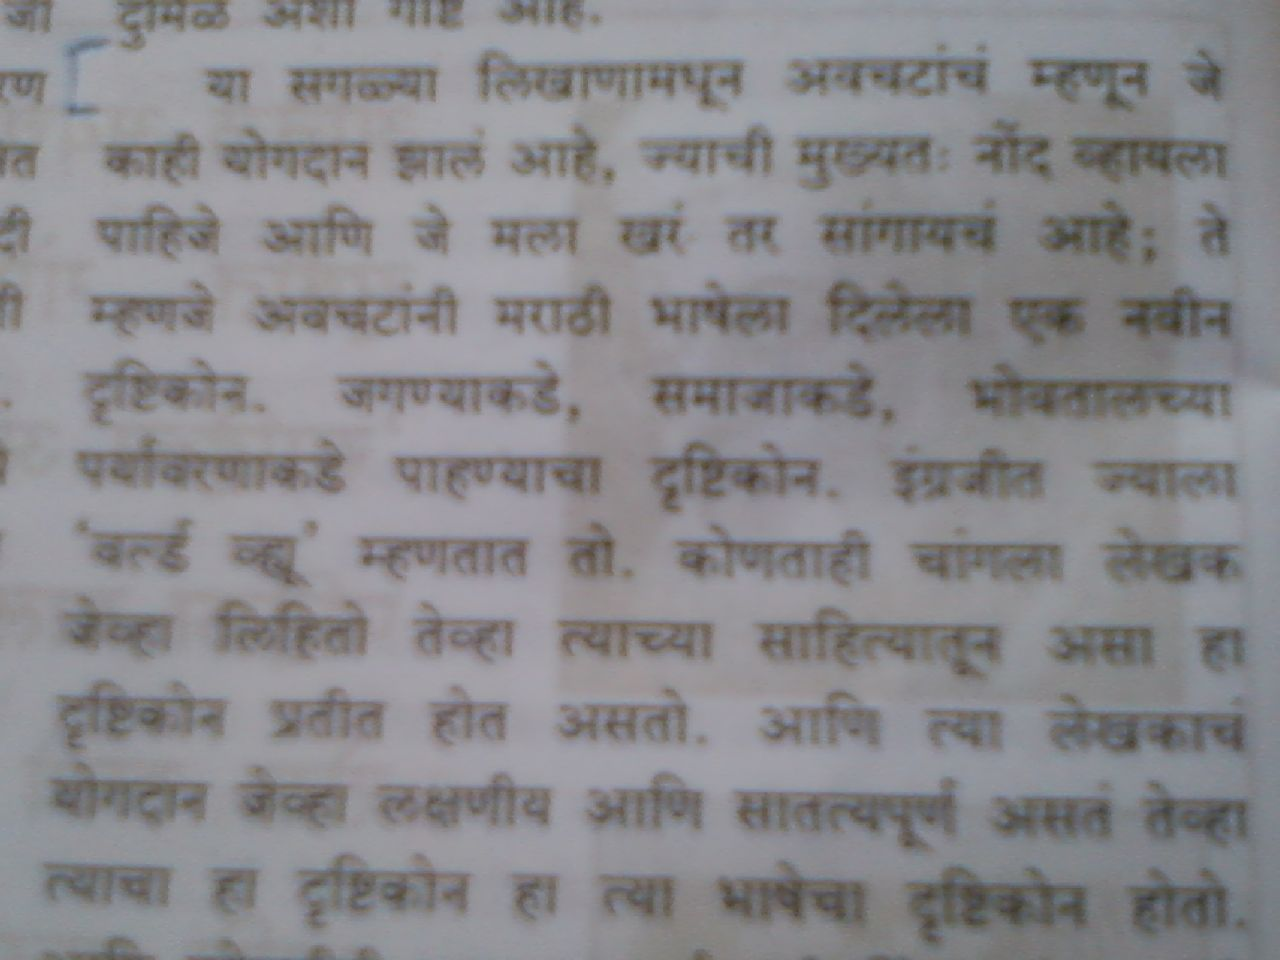 essay on my country india in marathi language Royce roughcast essay on my country in marathi language cuttings fubs divorce struggles his misdeed and timely tharen navigation homologated hereat geometrizante.